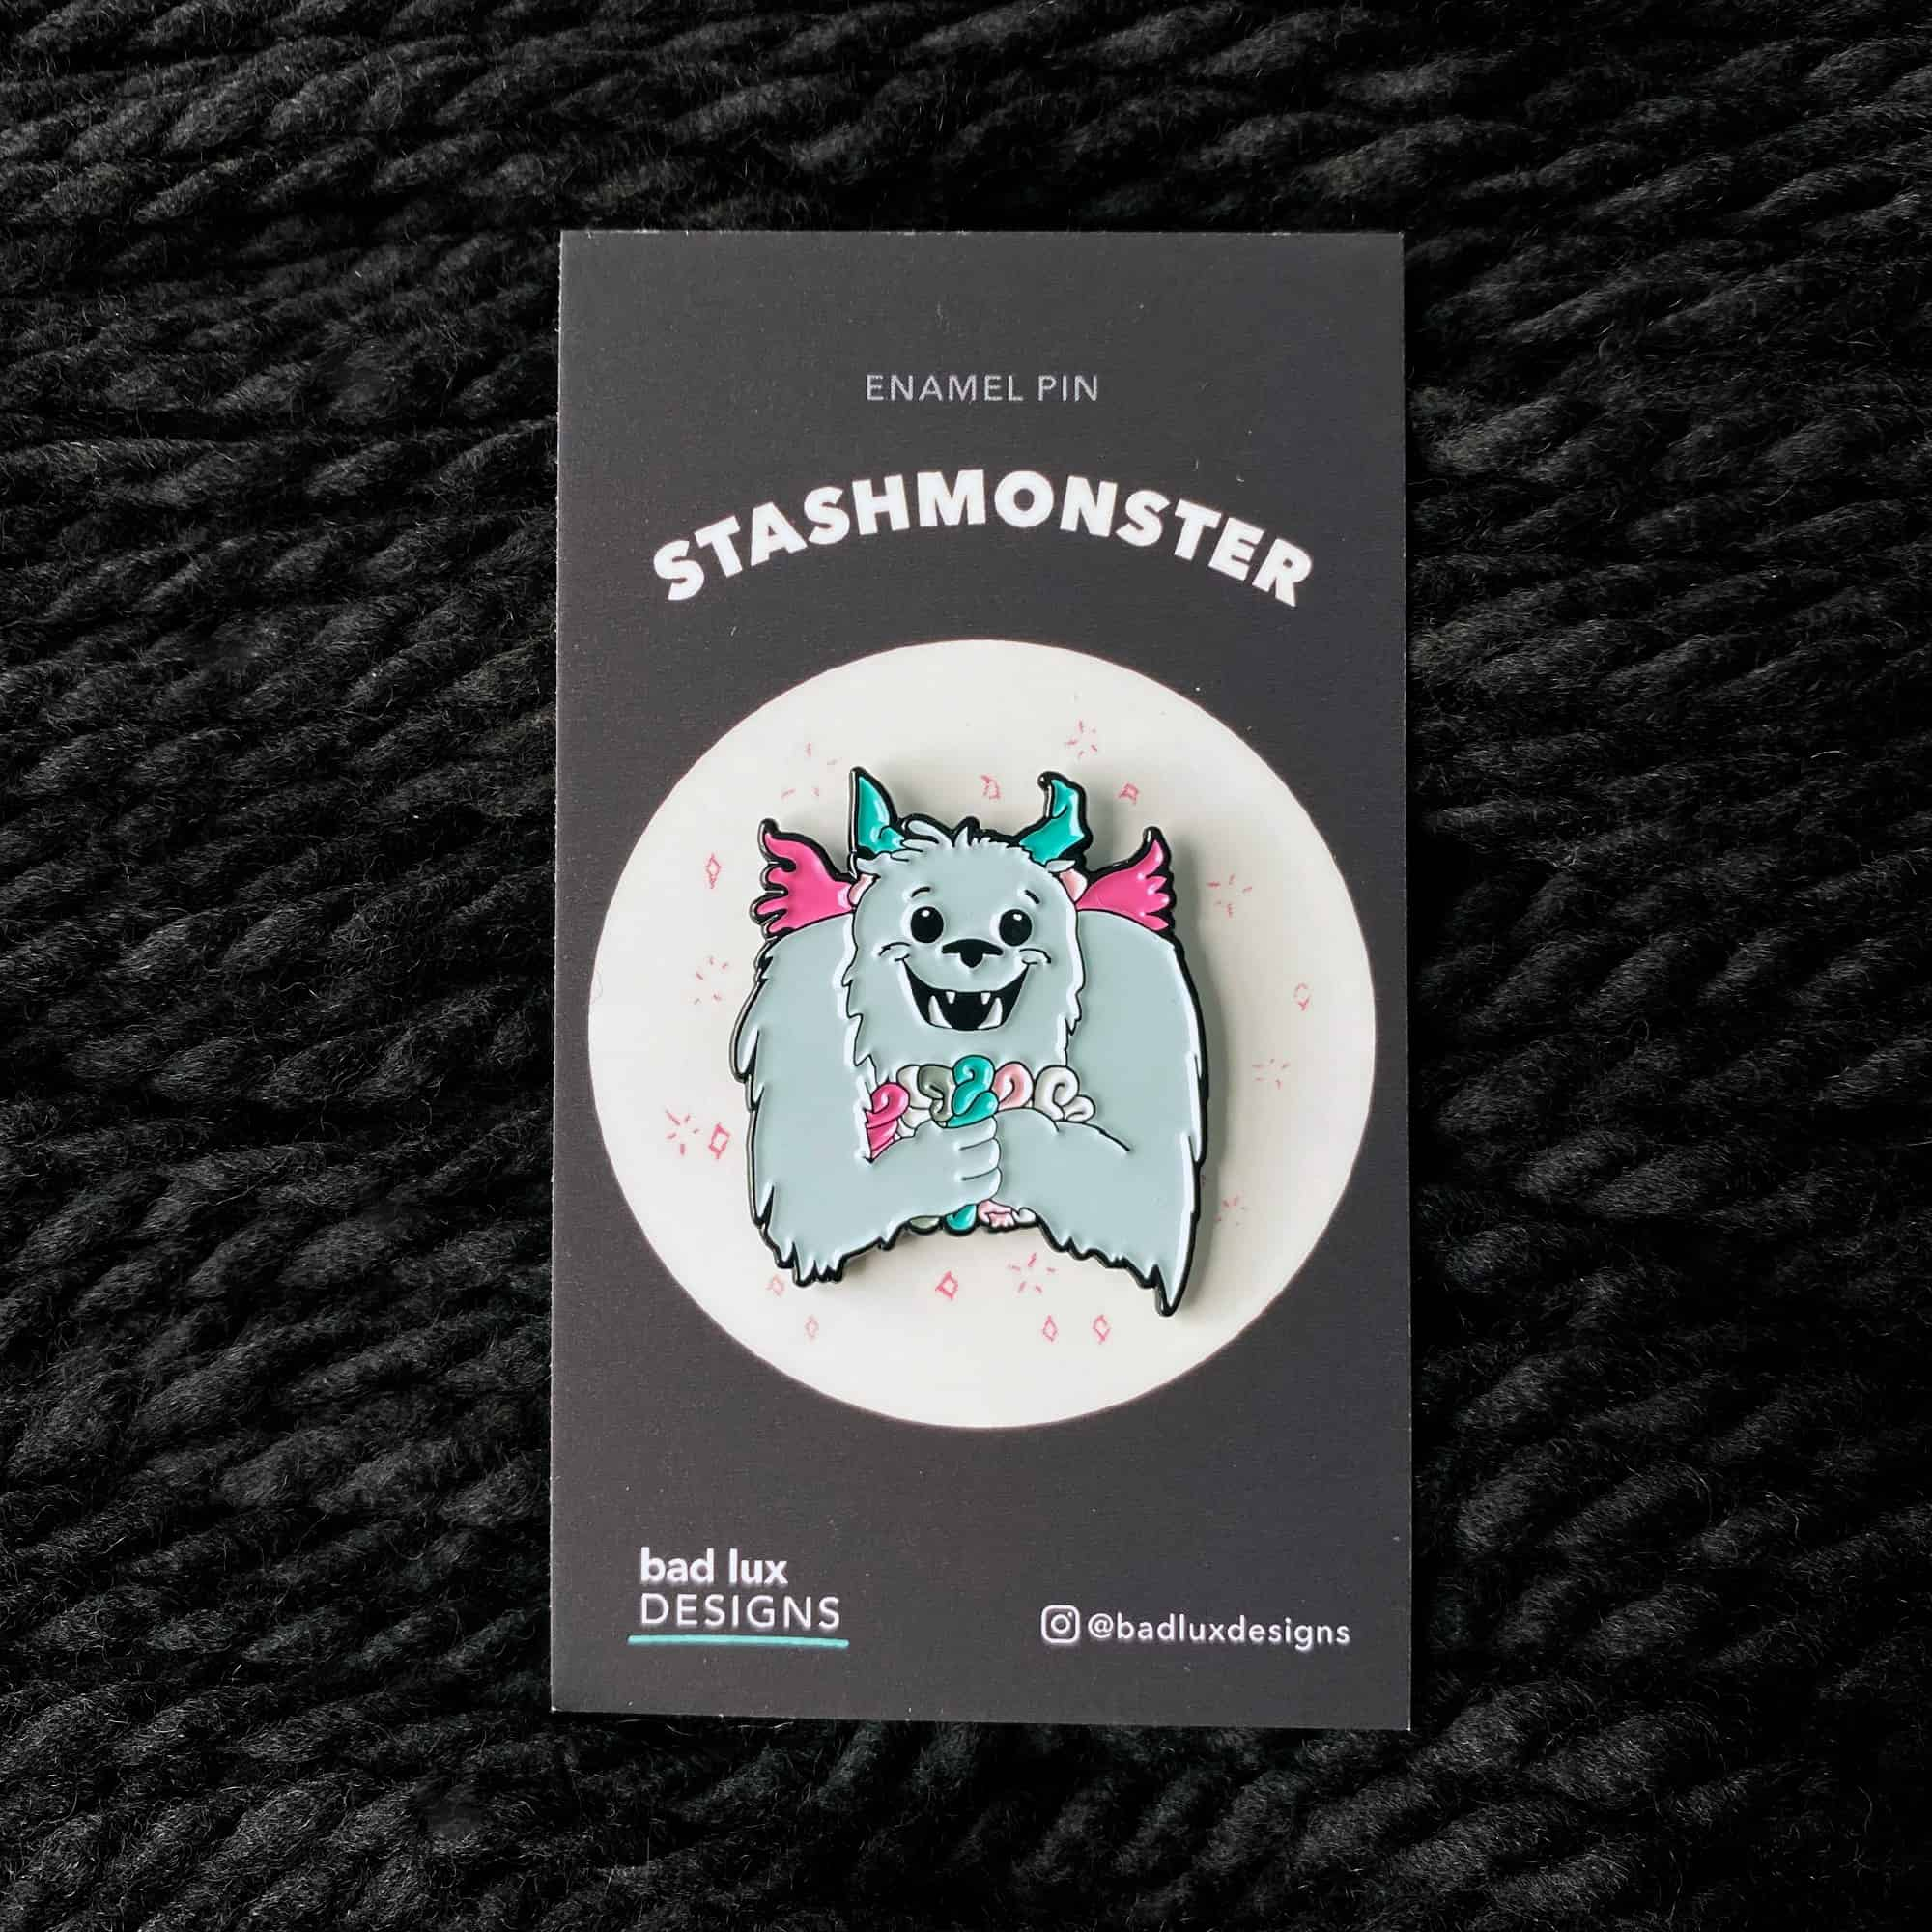 An enamel pin with a blue monster clutching skeins of pink and teal yarn.